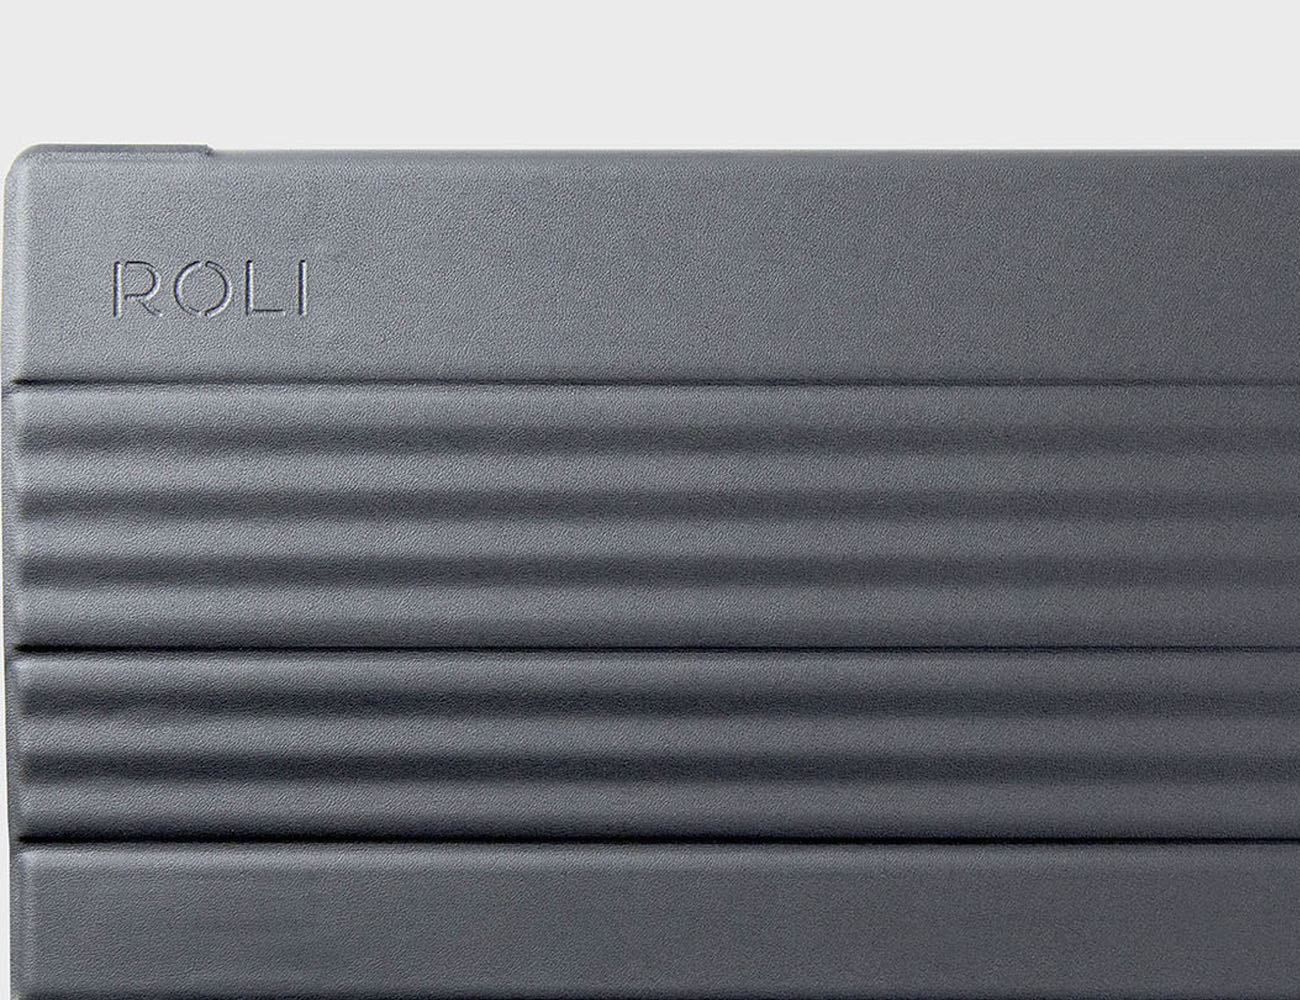 flip-case-for-seaboard-rise-roli-06